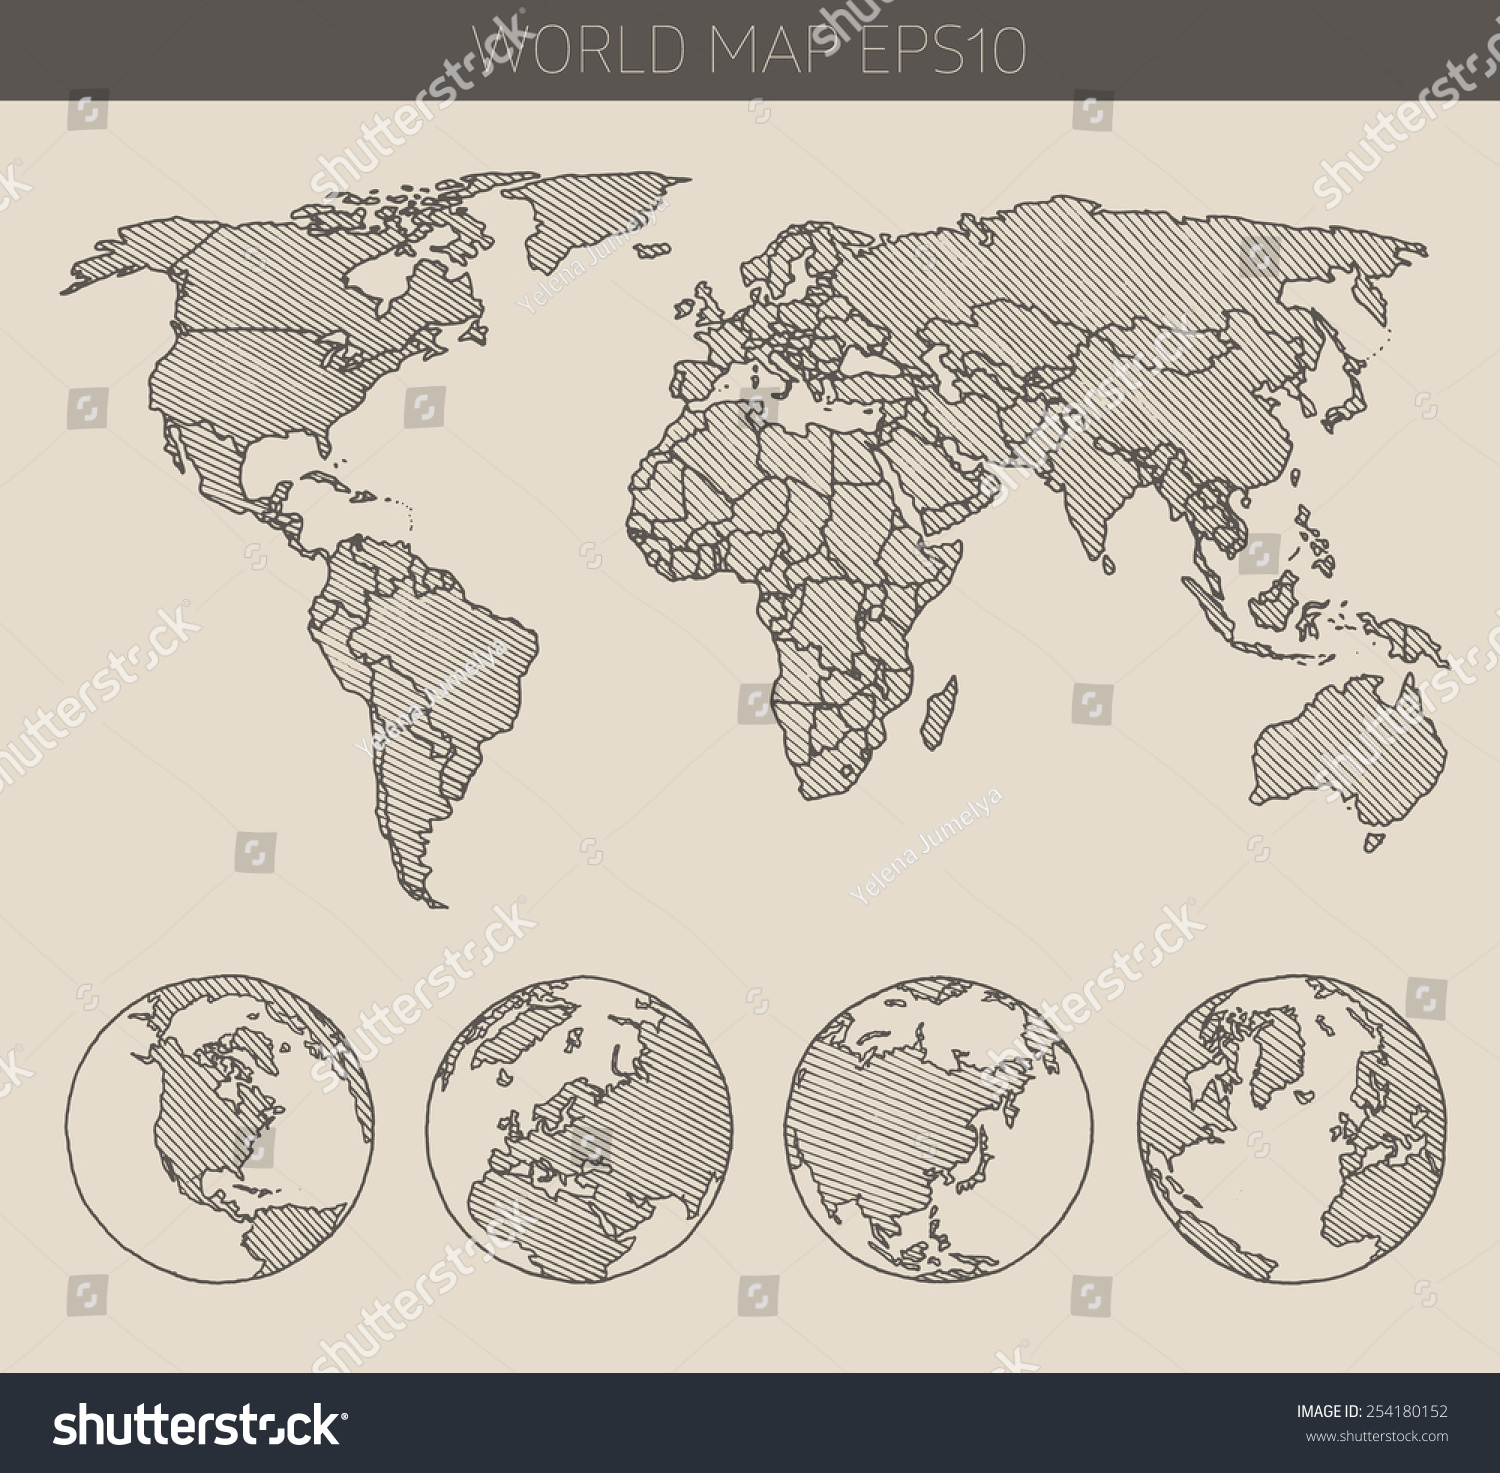 World map hemispheres contour vector illustration vectores en stock world map with hemispheres contour vector illustration hand drawn sketch gumiabroncs Image collections